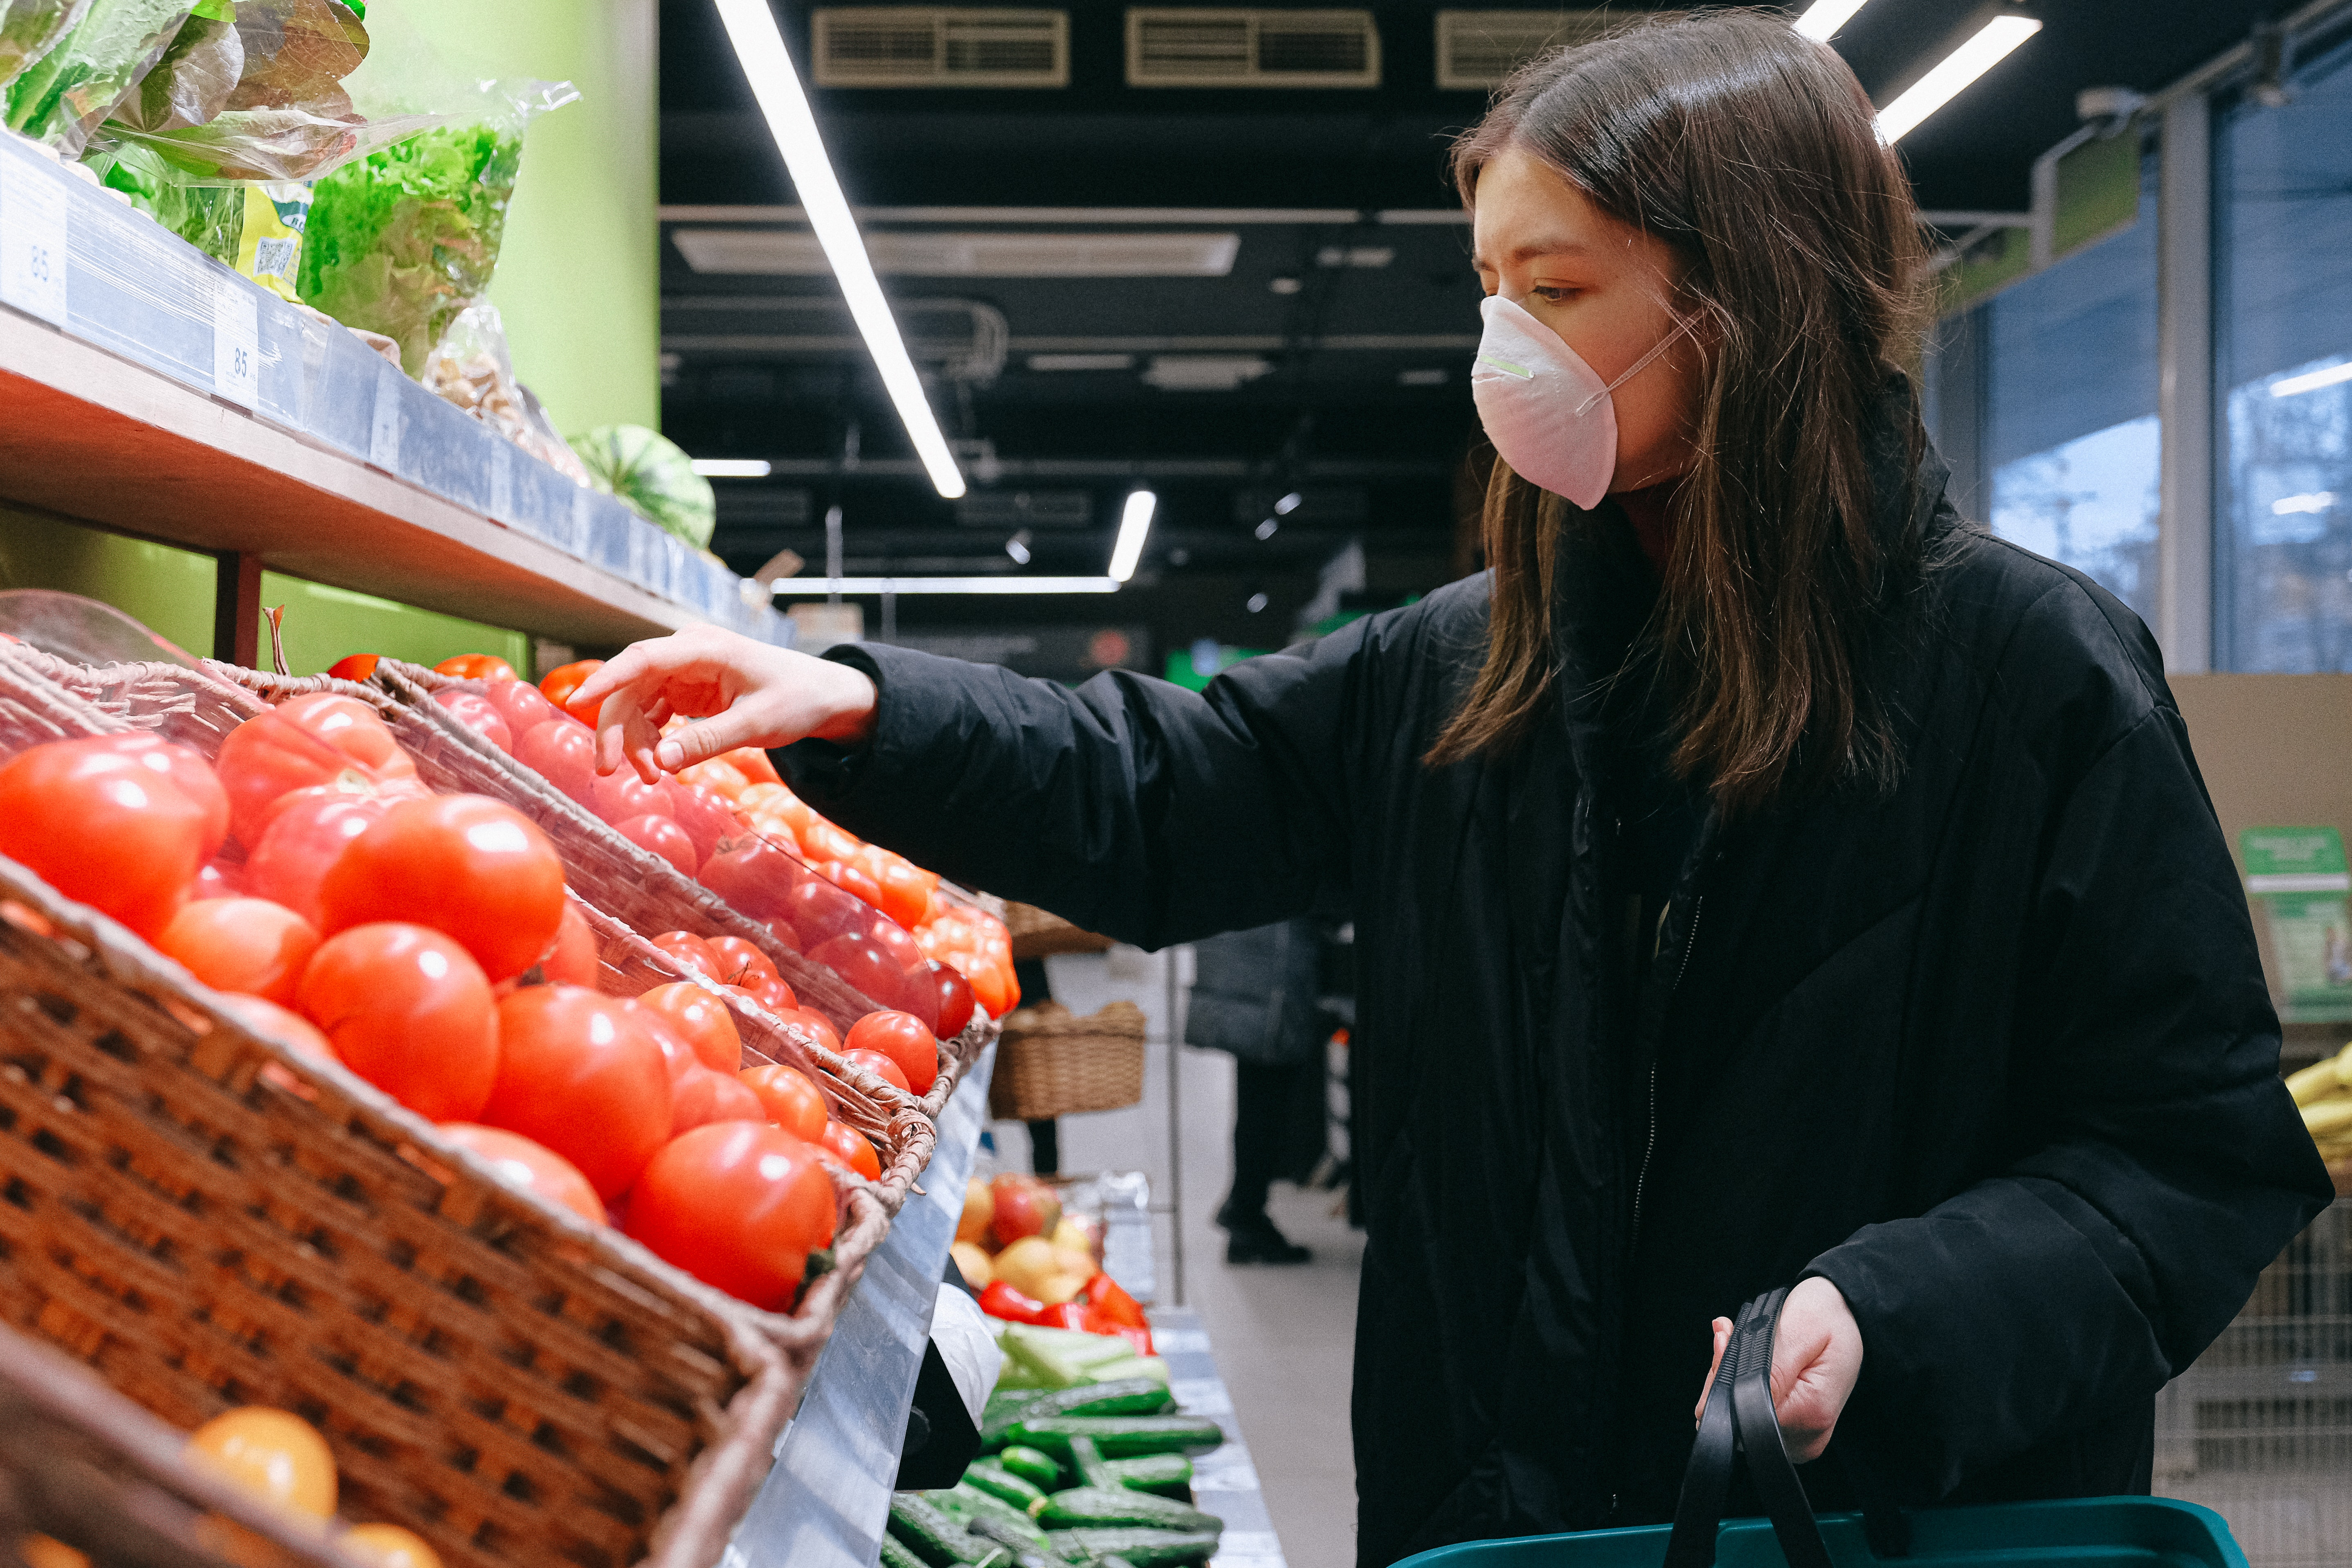 Woman in mask shopping for produce